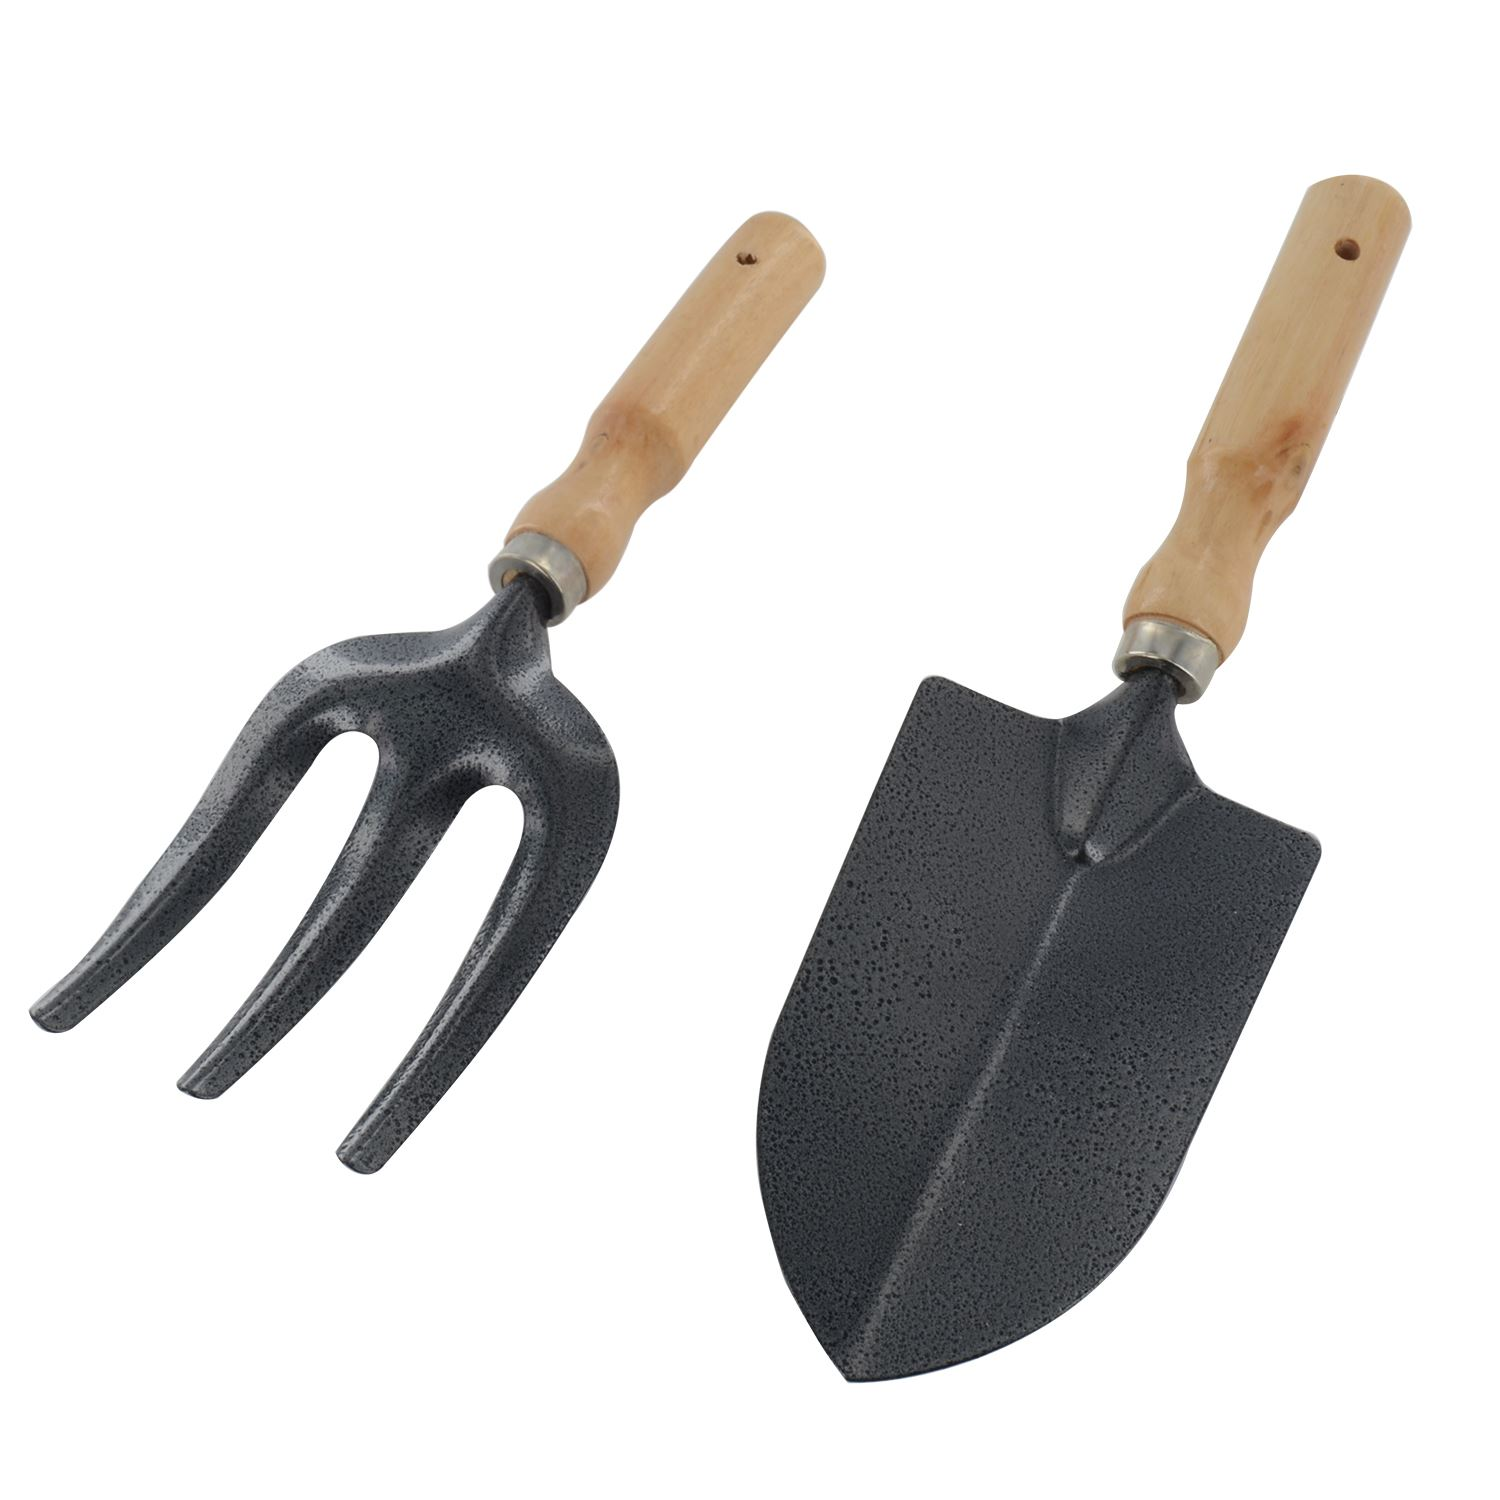 Garden trowel hand fork tool gardening potting weeding for Small garden hand tools